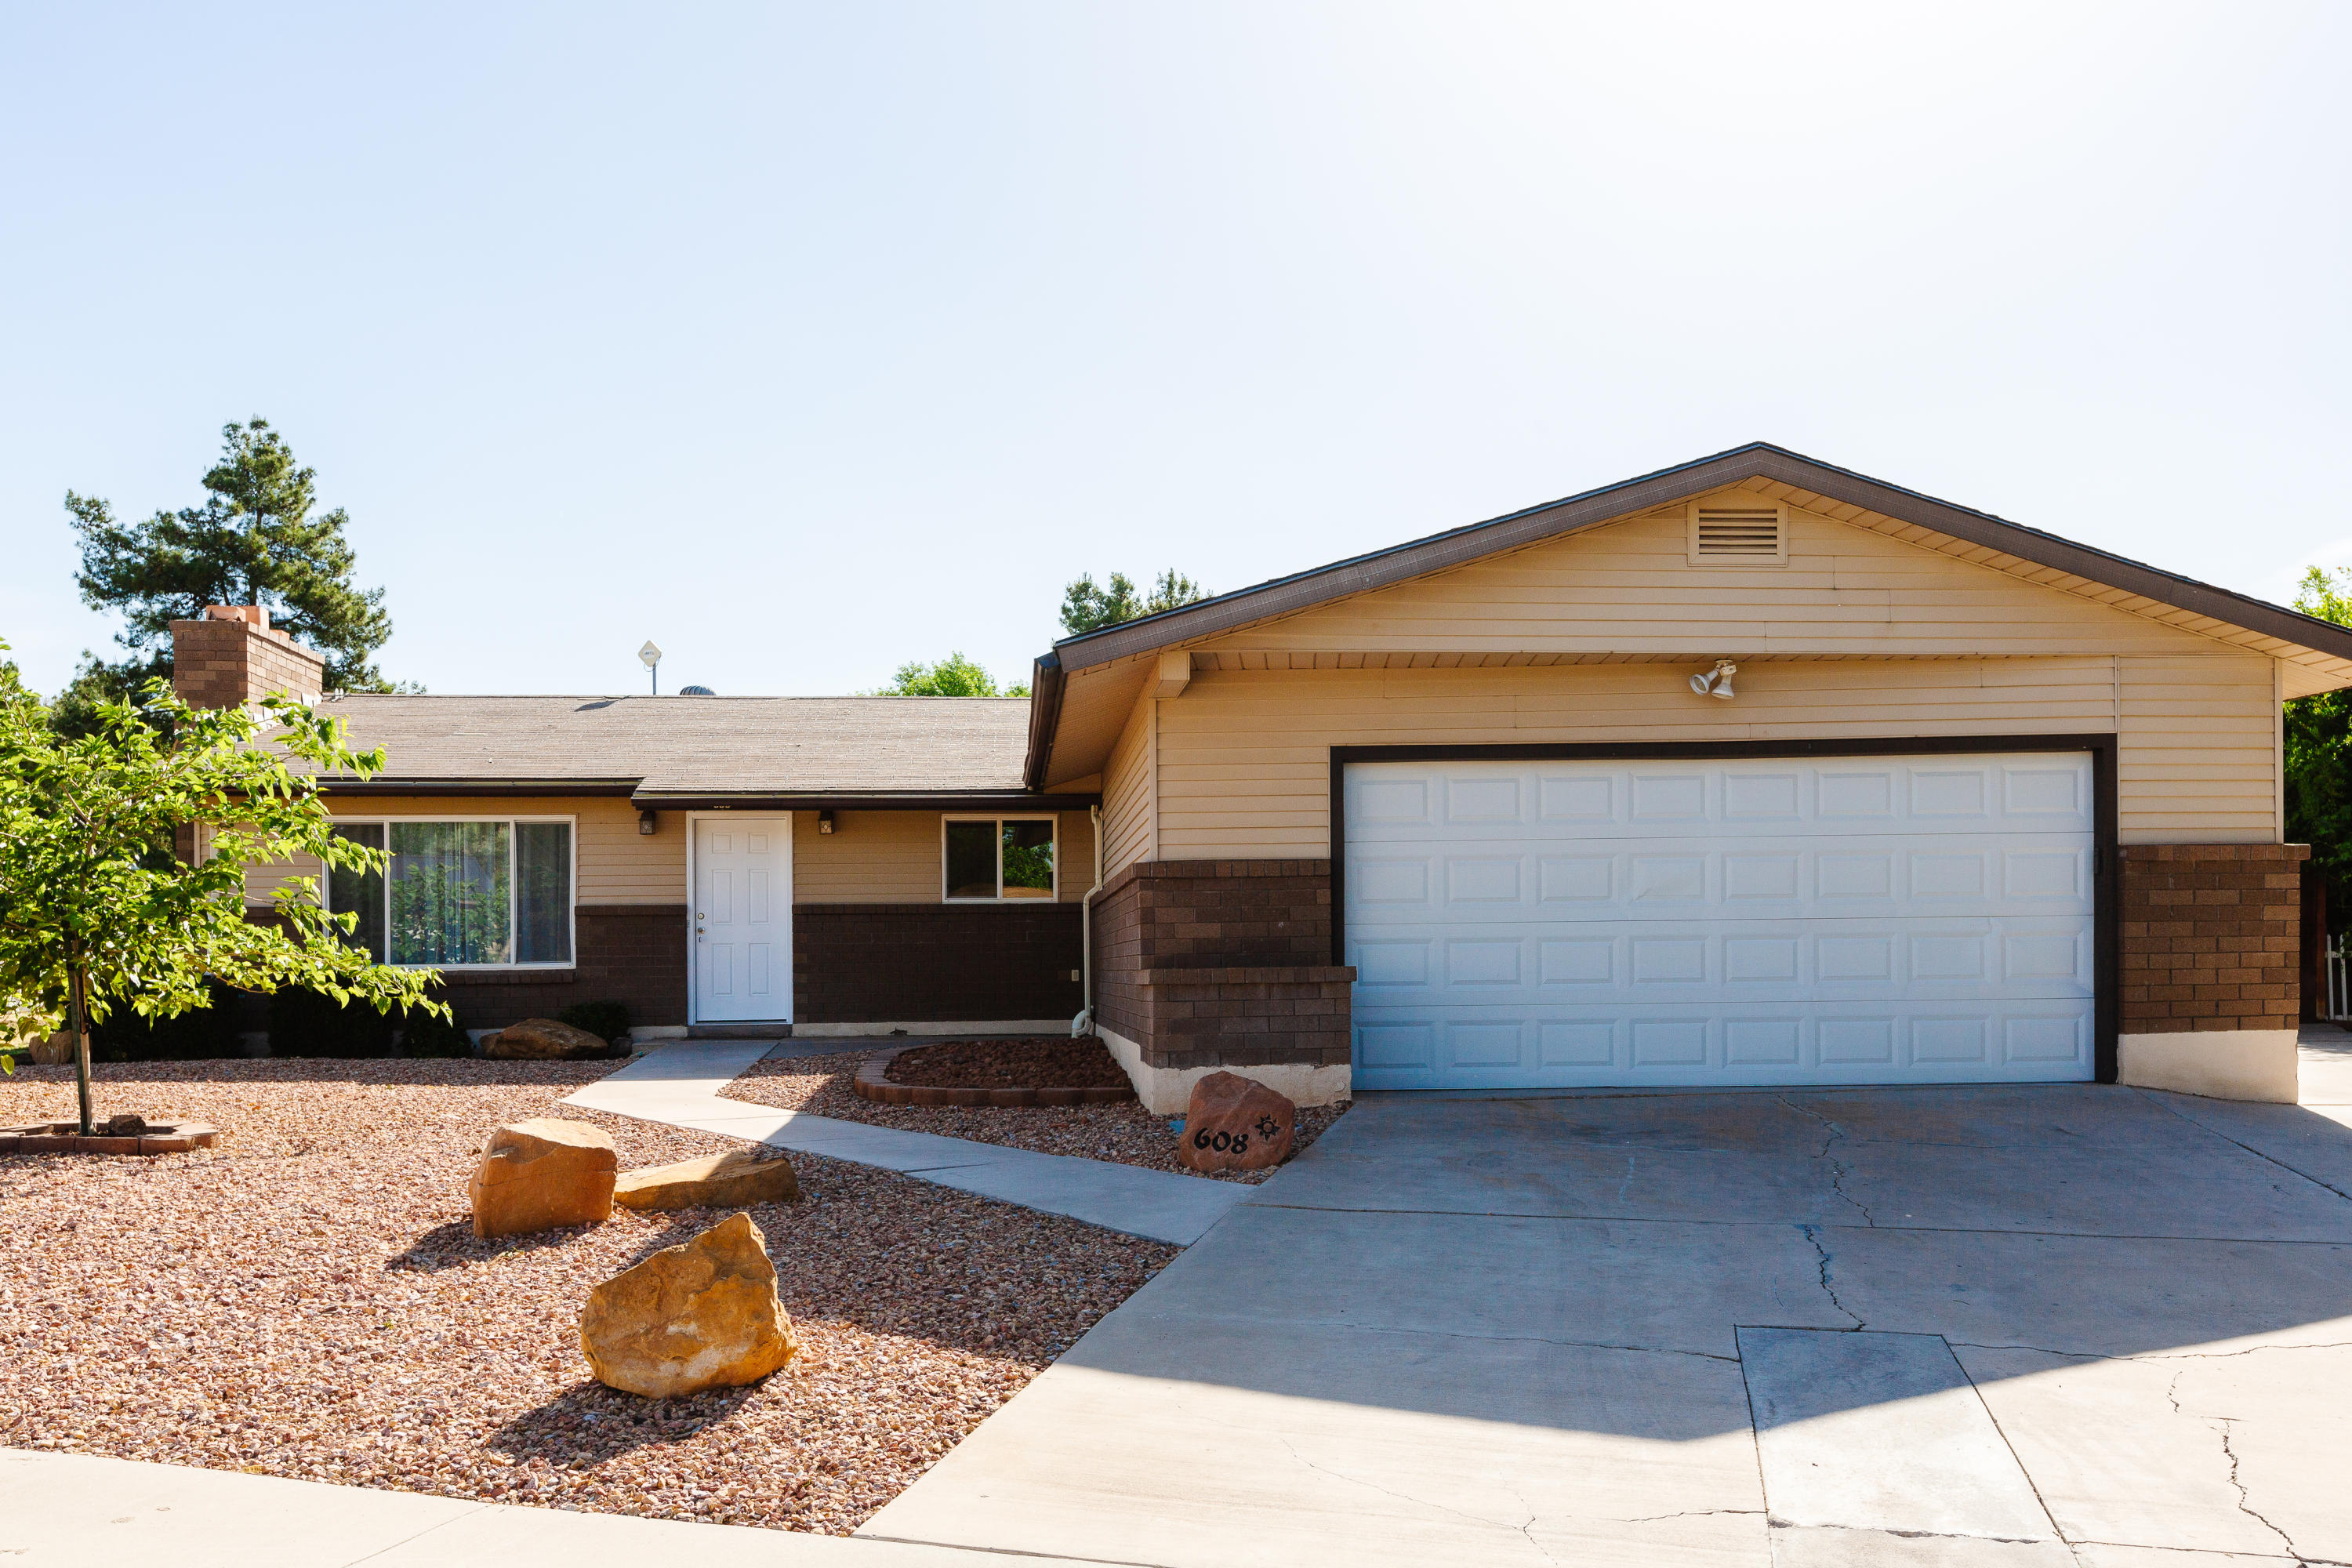 608 N 1275  W, St George in Washington County, UT 84770 Home for Sale